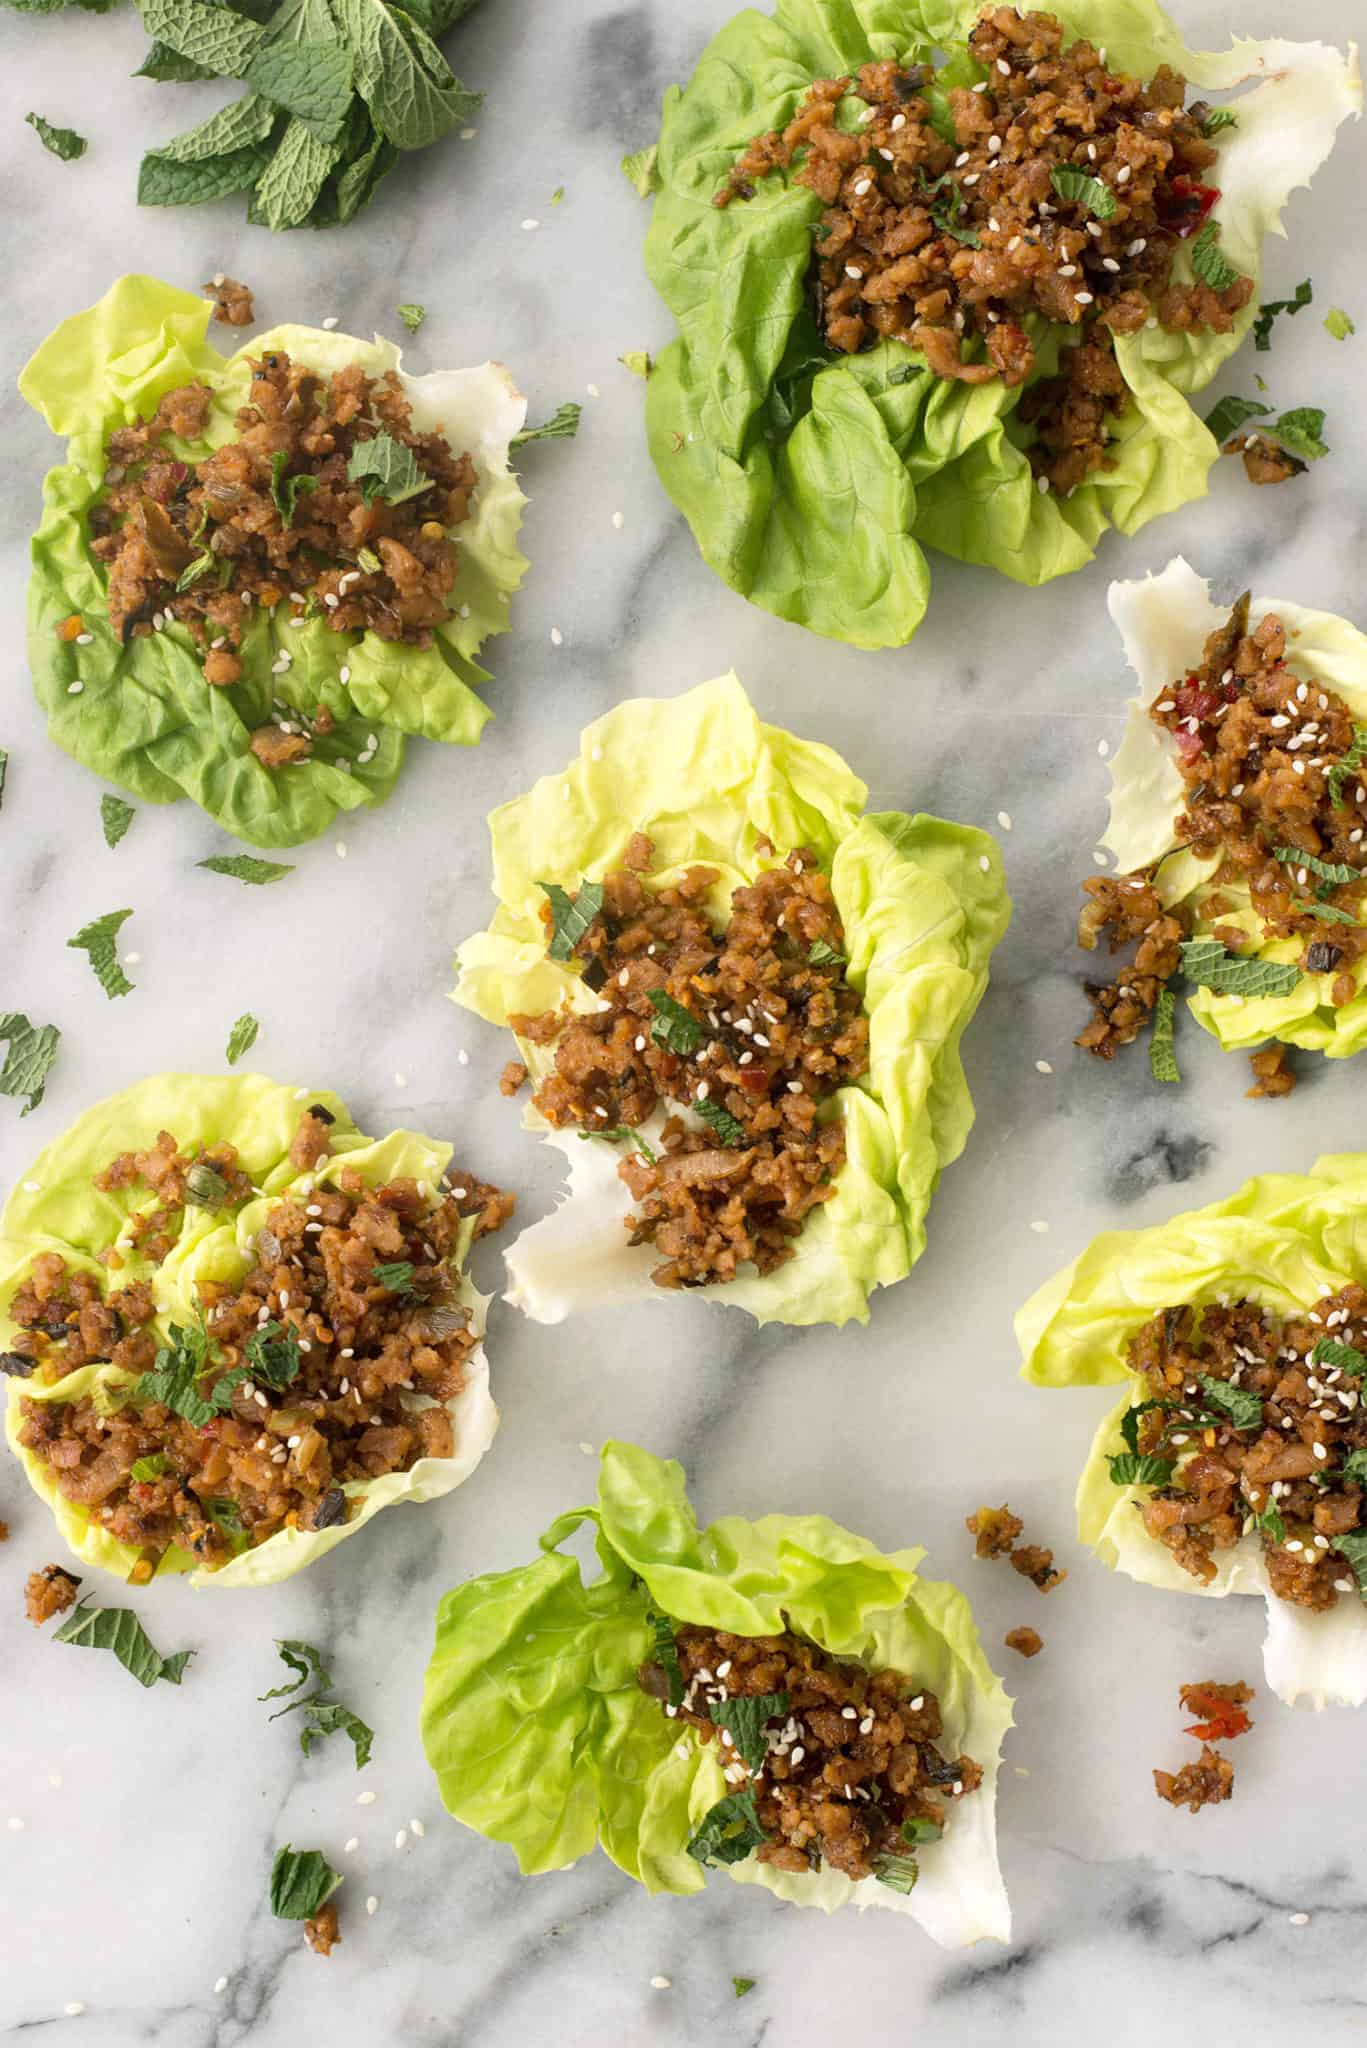 Vegan Thai Larb Lettuce Wraps! These spicy wraps are the perfect healthy dinner.| www.delishknowledge.com